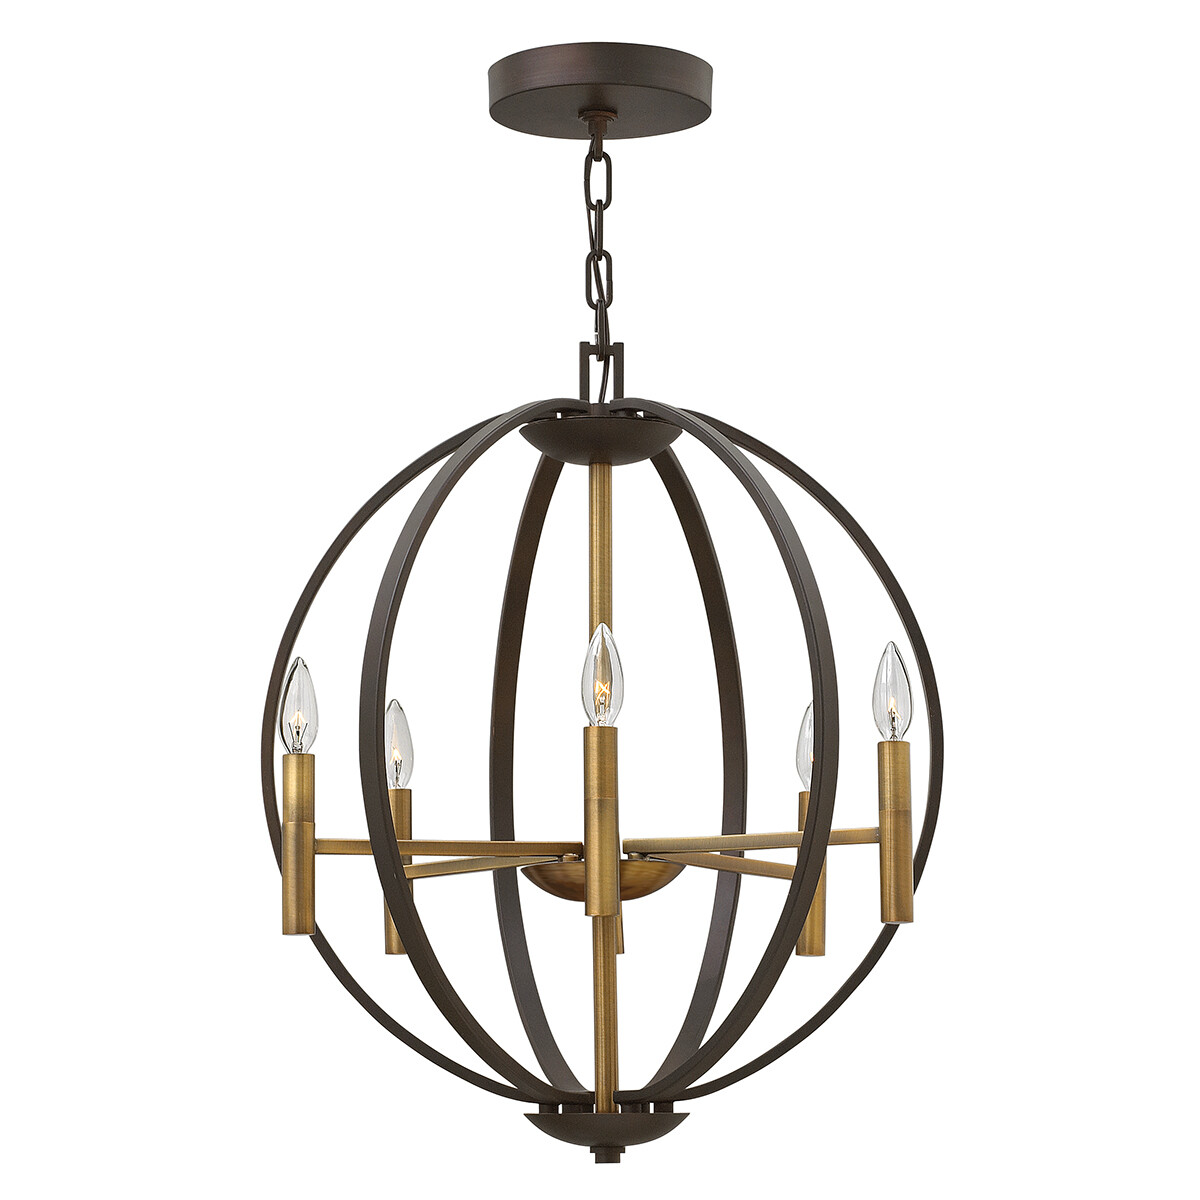 Hinkley Euclid 6 Light Pendant Chandelier